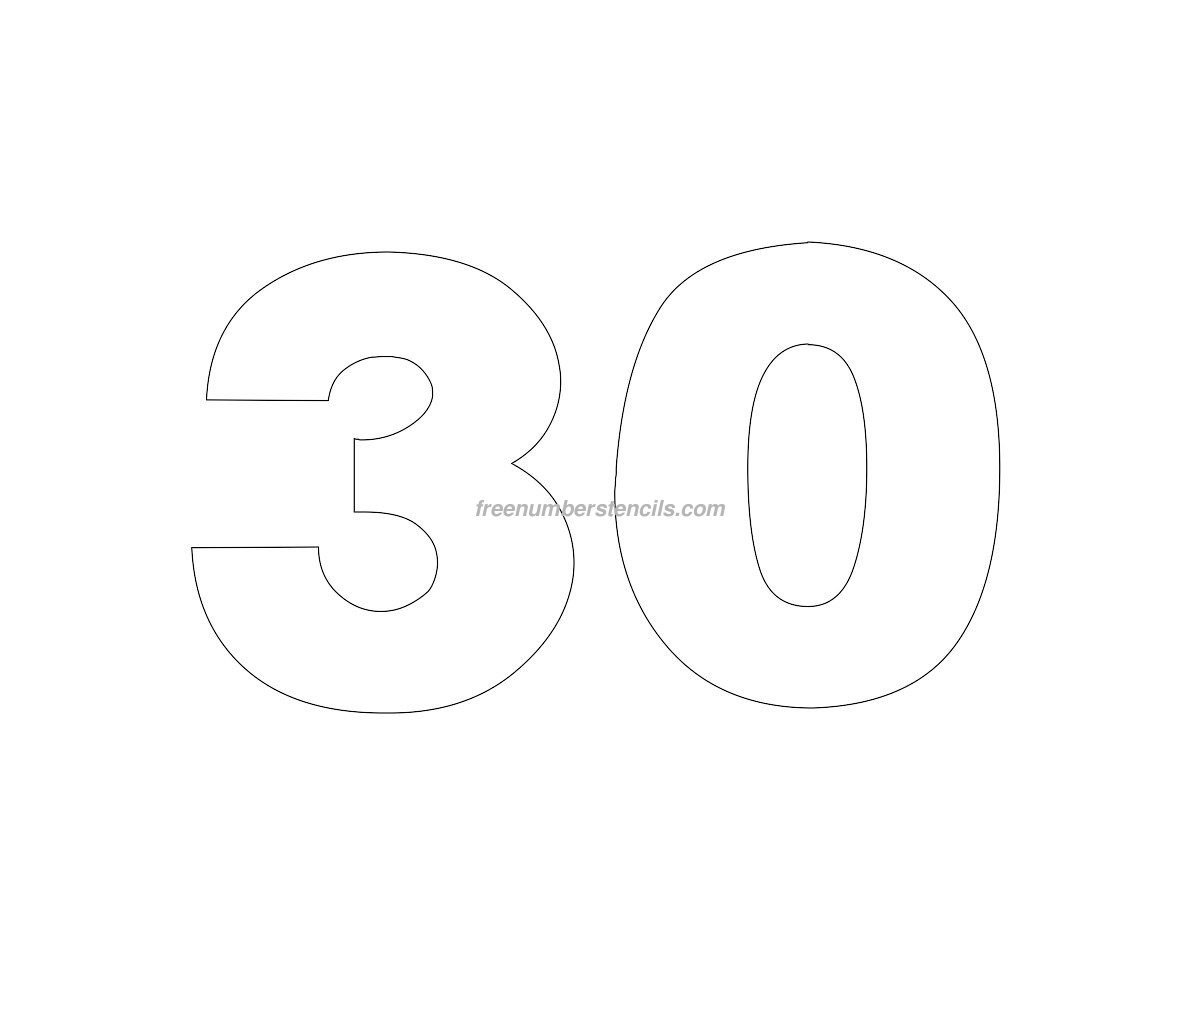 free numbers templates - free helvetica 30 number stencil